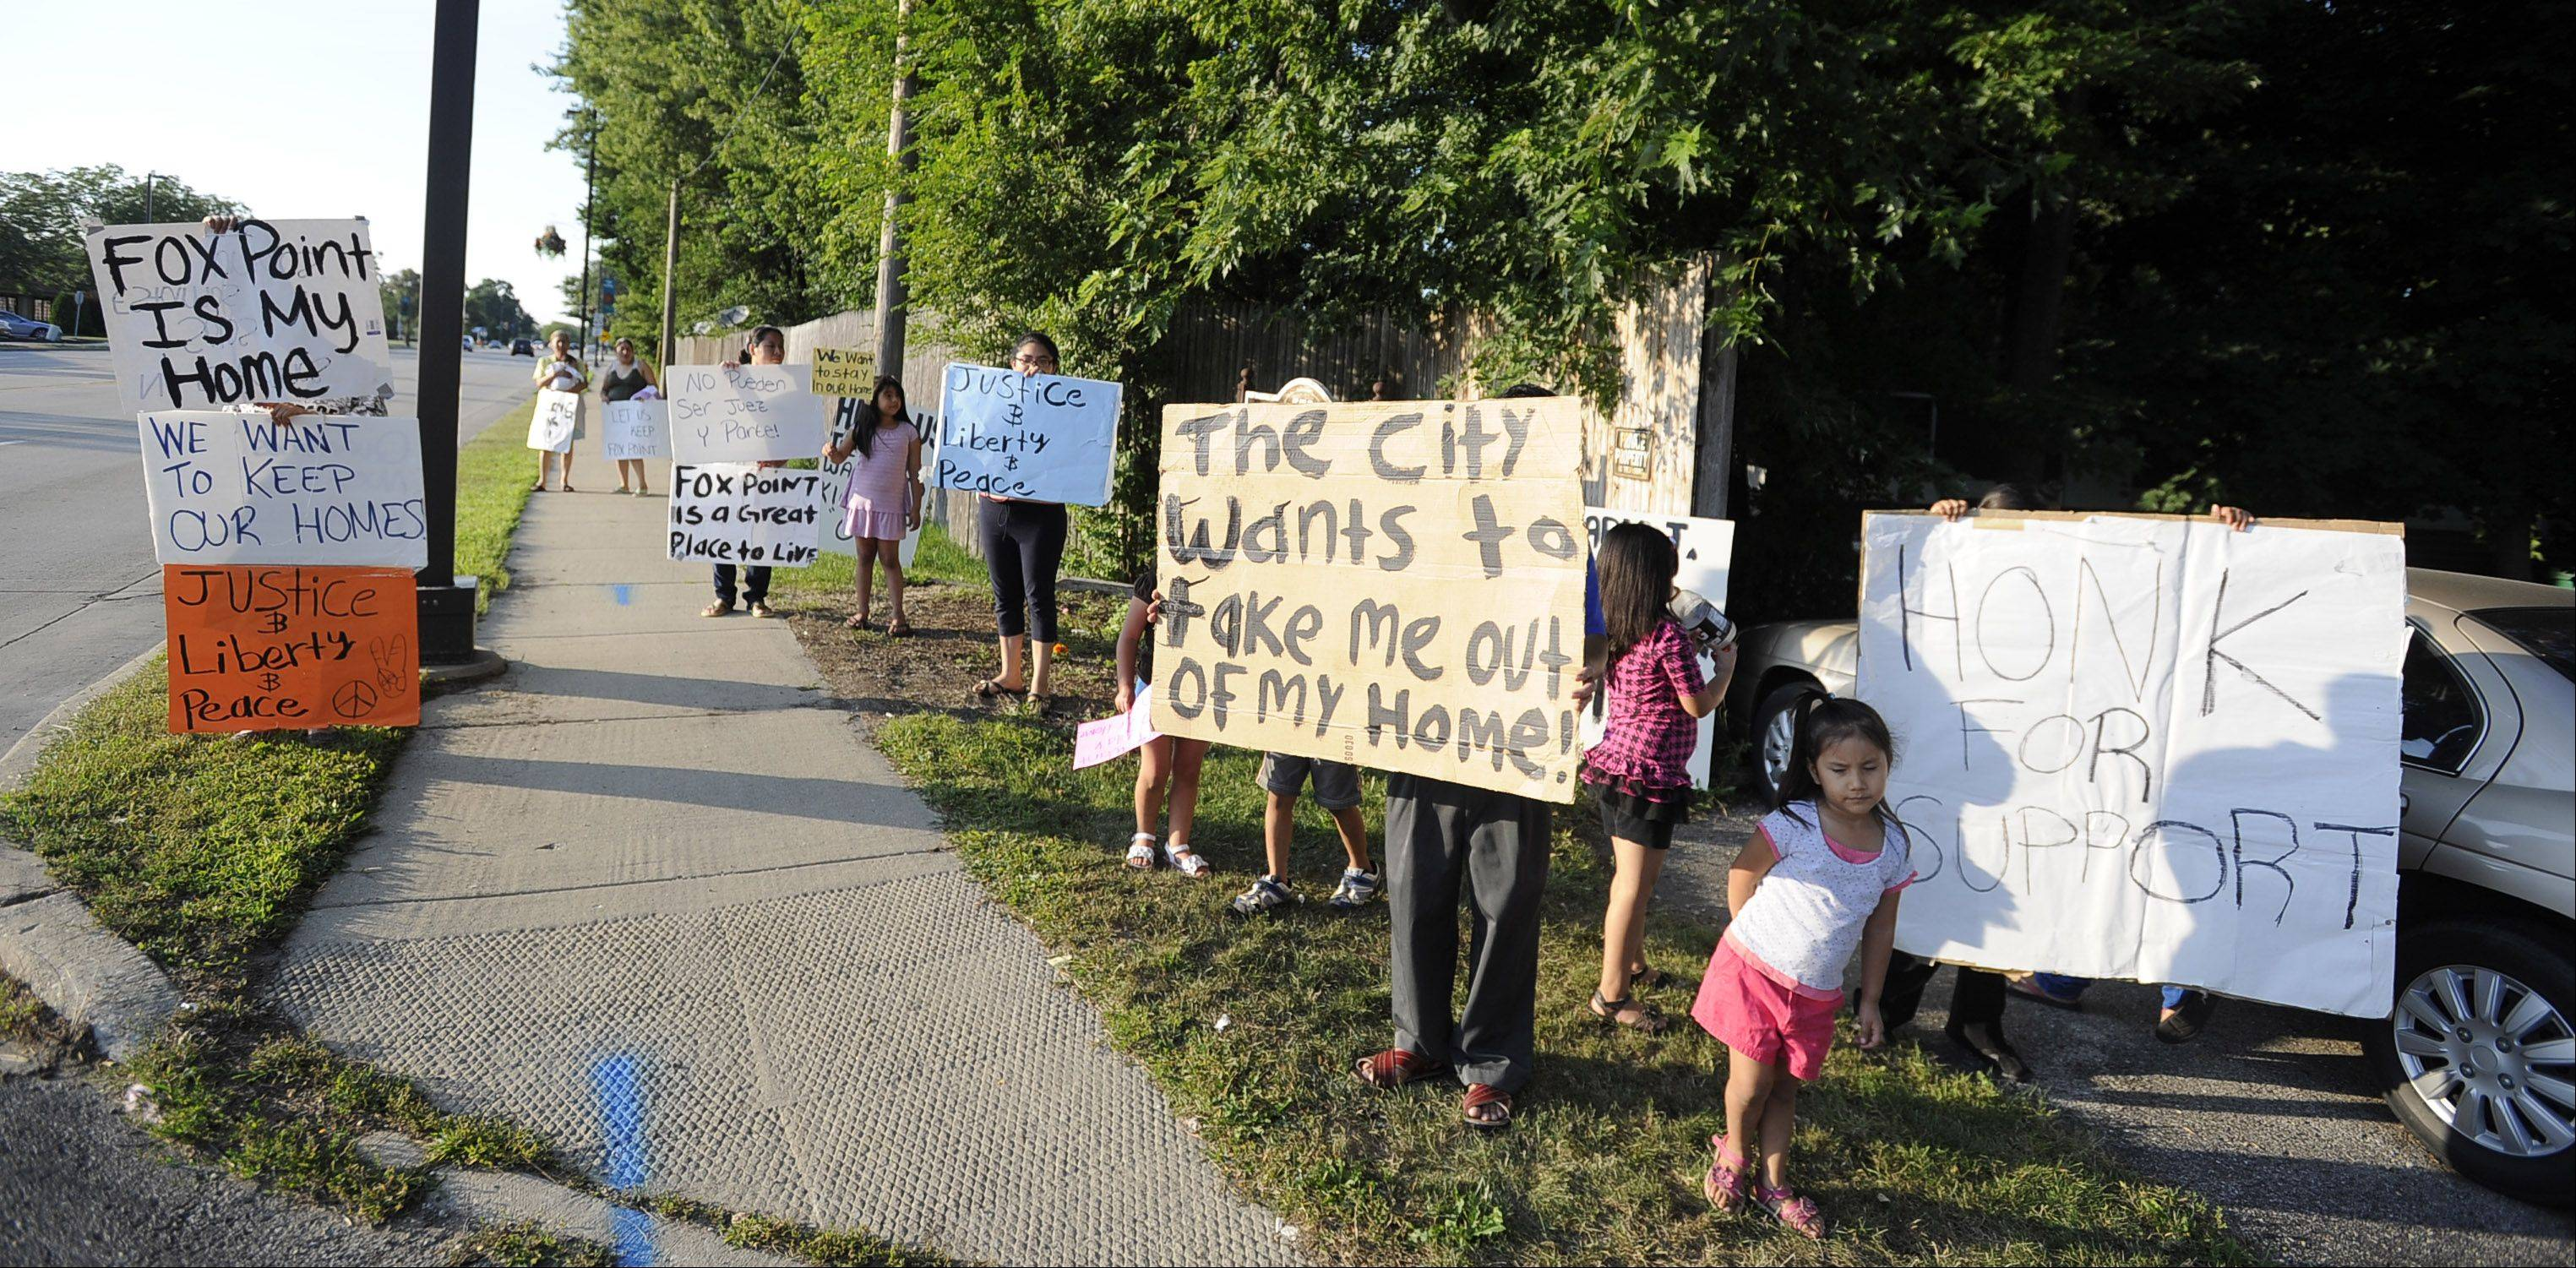 Residents of Fox Point mobile home park along Milwaukee Avenue in Wheeling protest last Friday, alleging the village is trying to displace them.